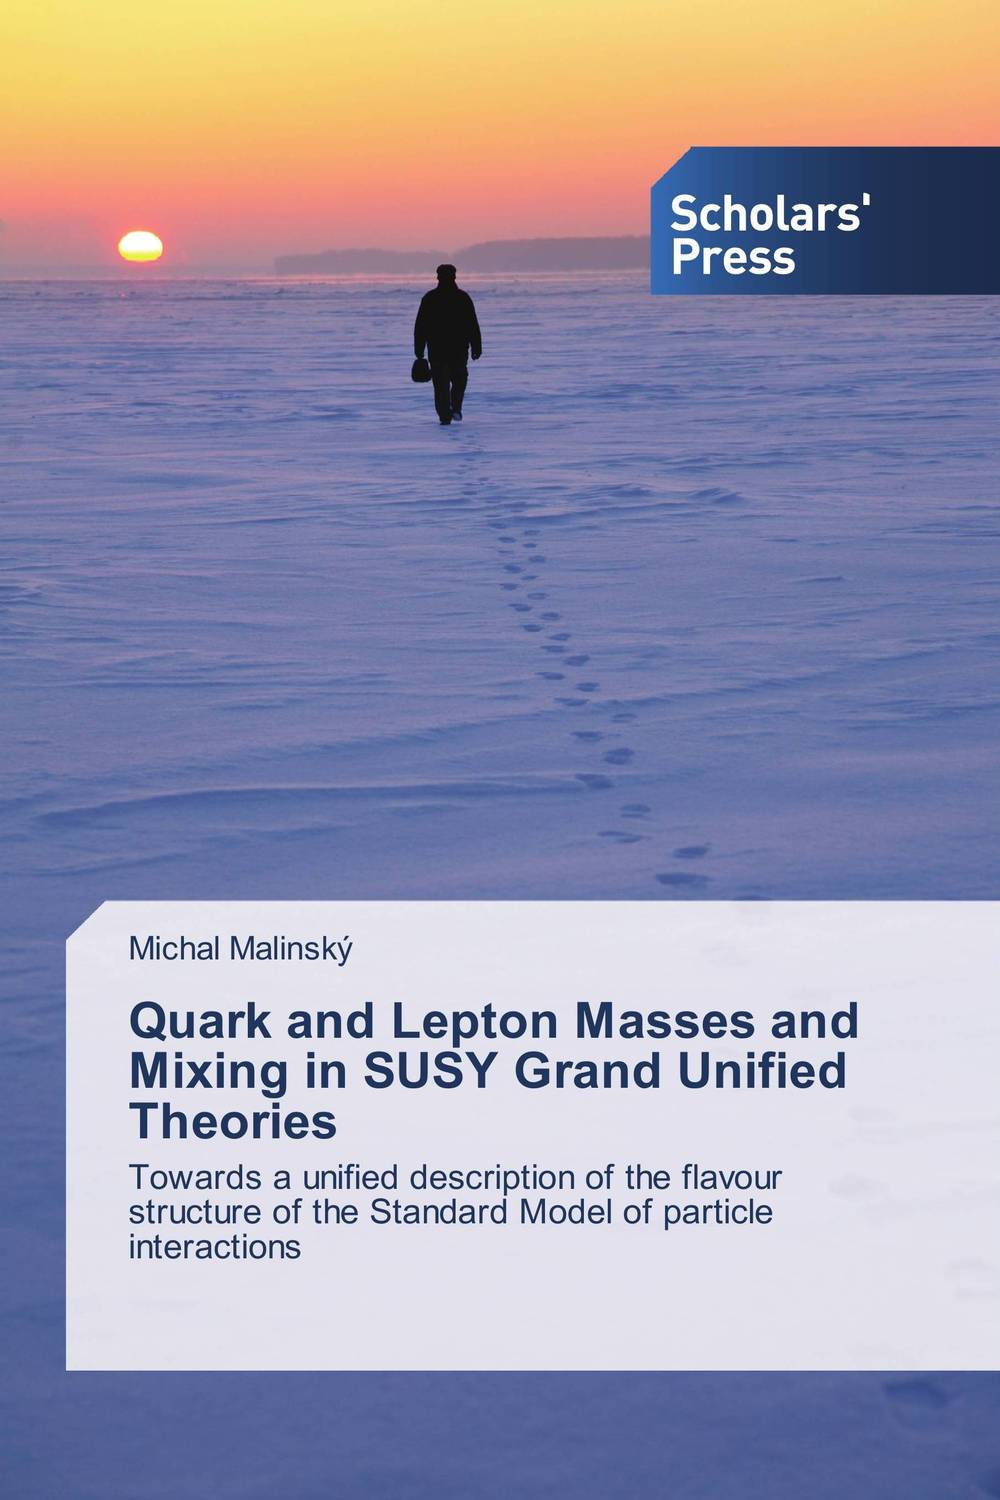 Quark and Lepton Masses and Mixing in SUSY Grand Unified Theories ozone lepton